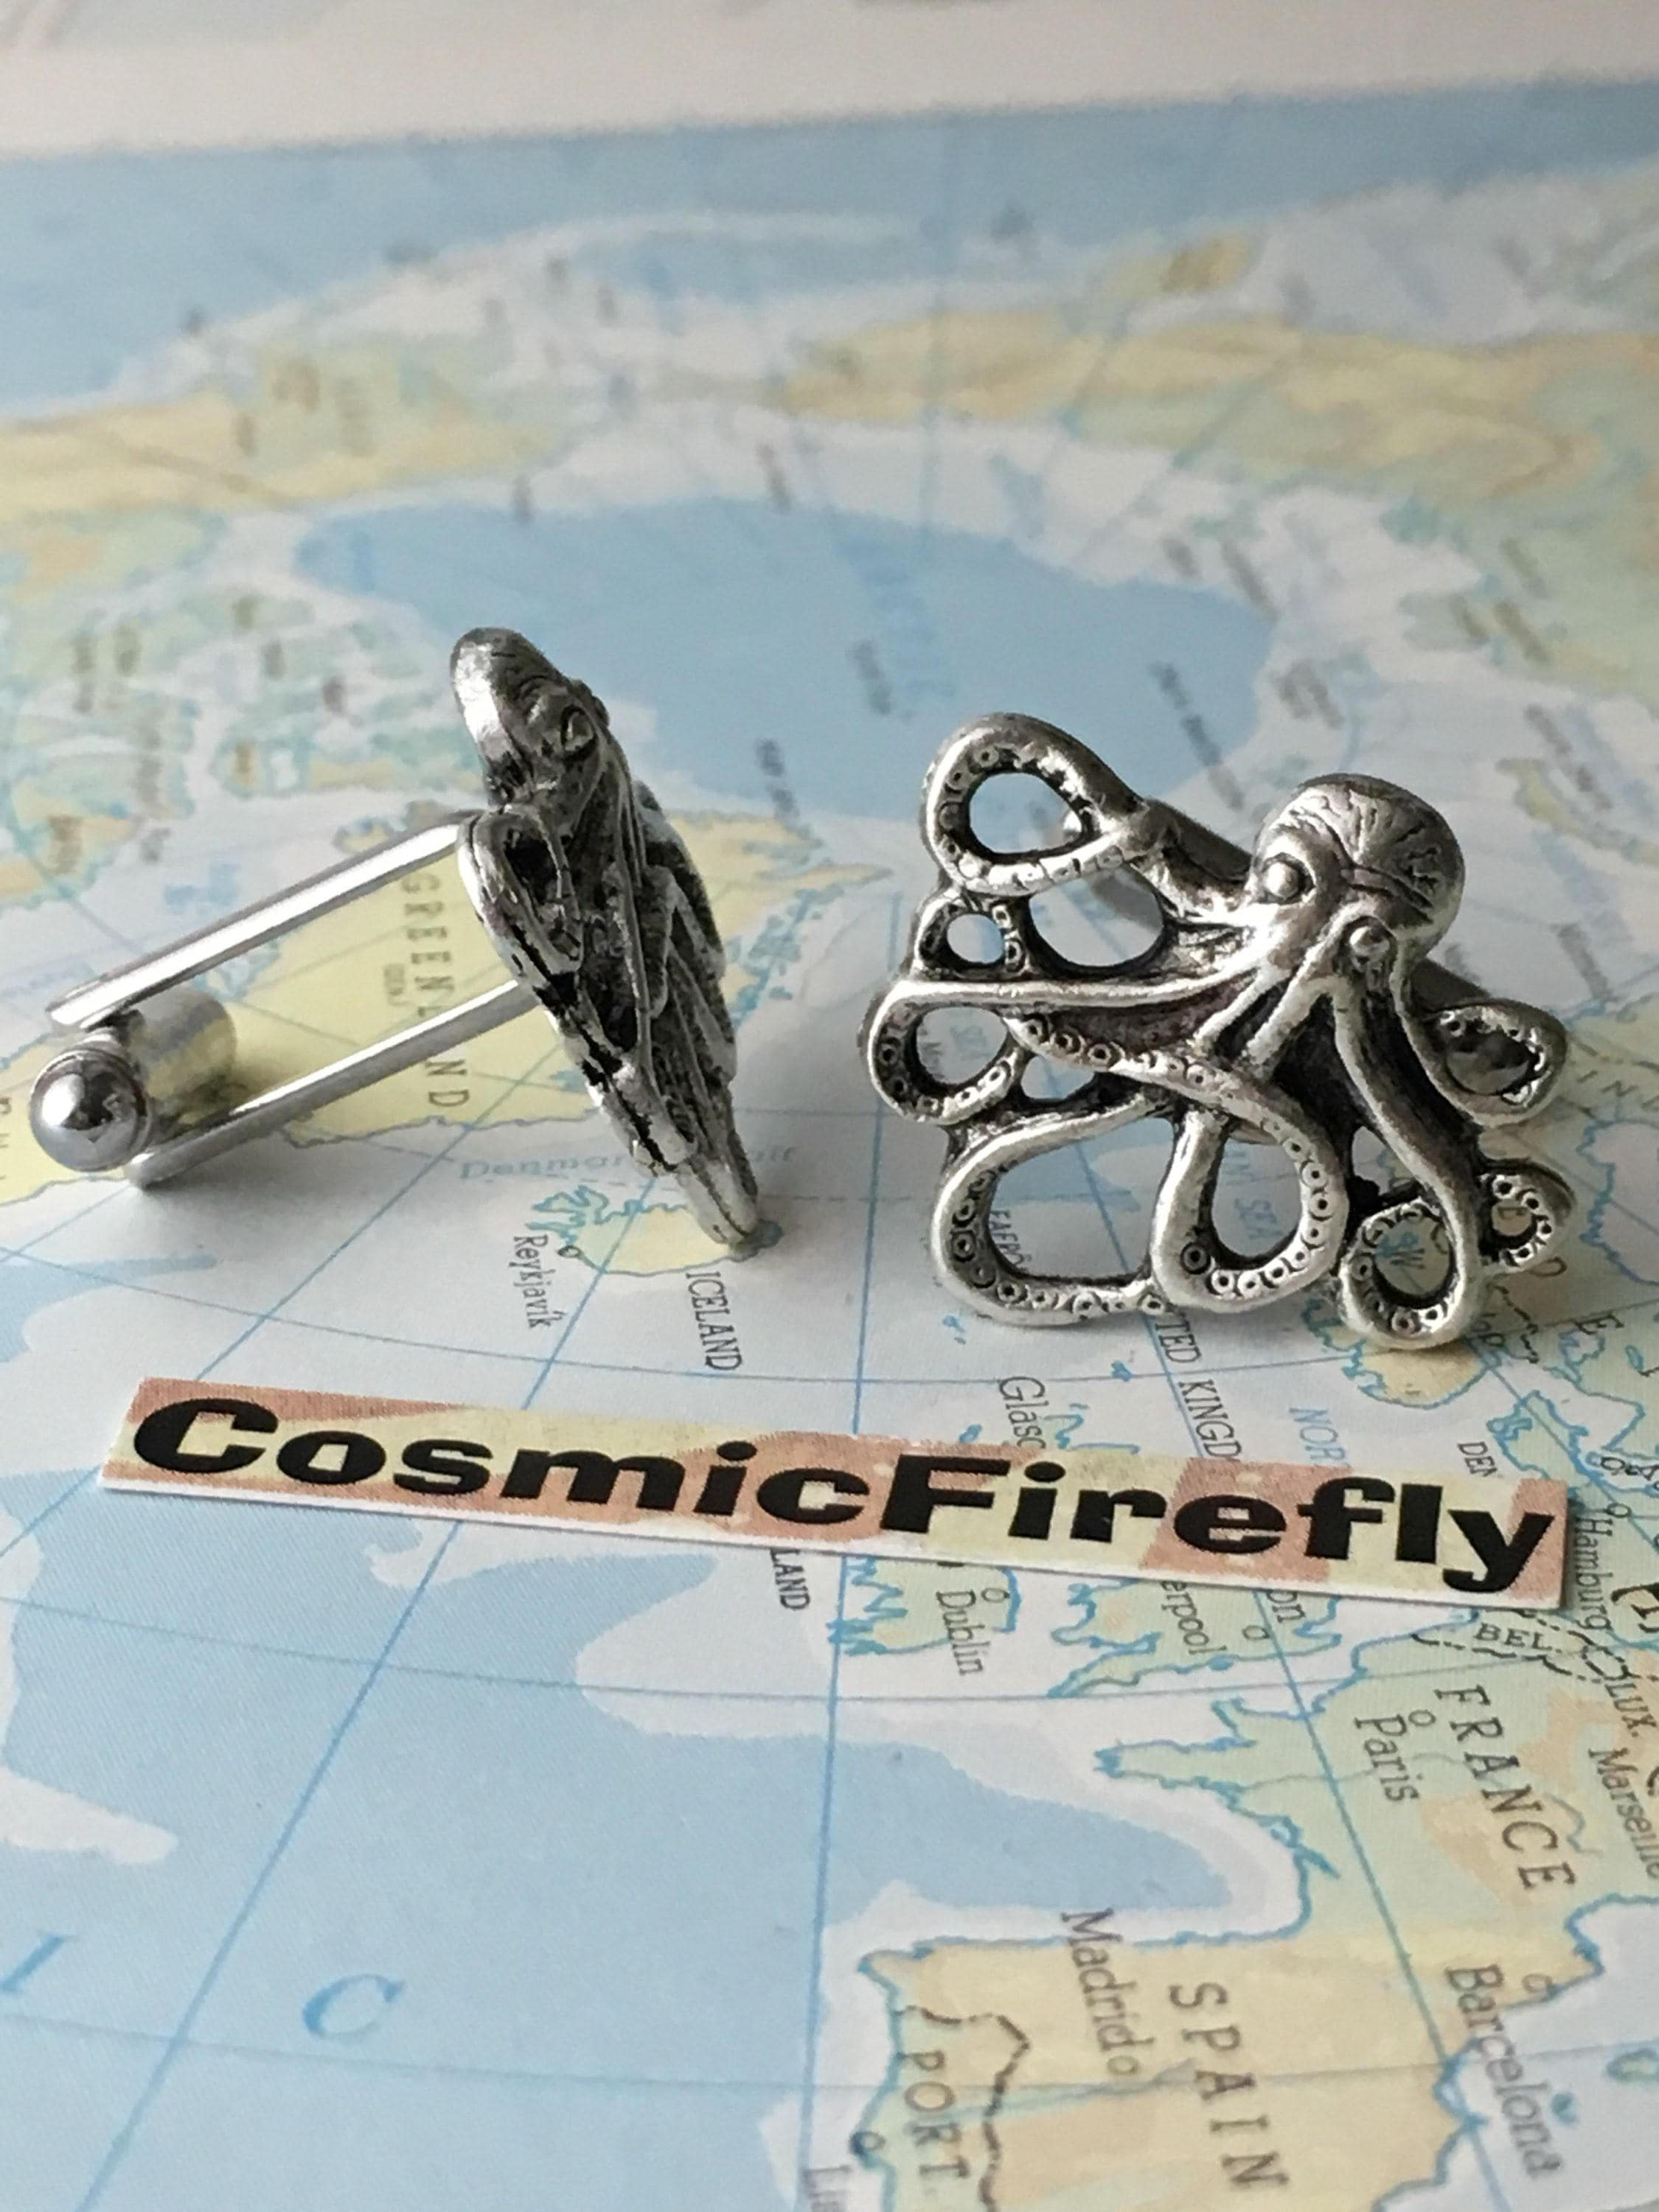 Silver Octopus Cufflinks Popular Men's Cufflinks Vintage Inspired Silver Cufflinks By Cosmic Firefly Best Men's Accessories & GIfts For Him